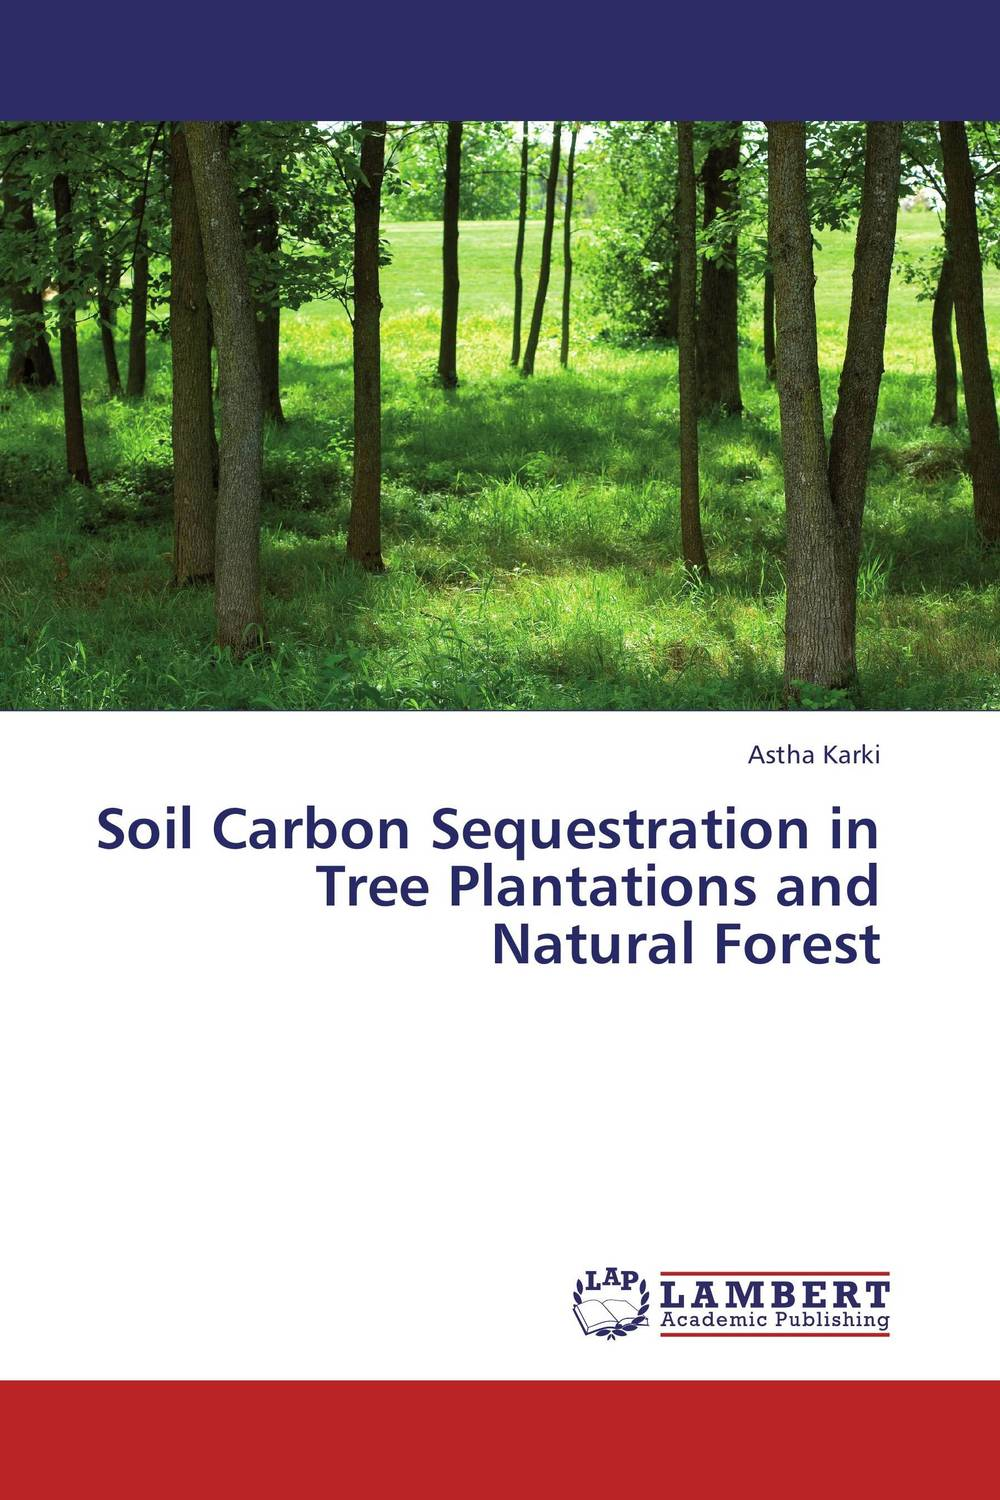 купить Soil Carbon Sequestration in Tree Plantations and Natural Forest недорого